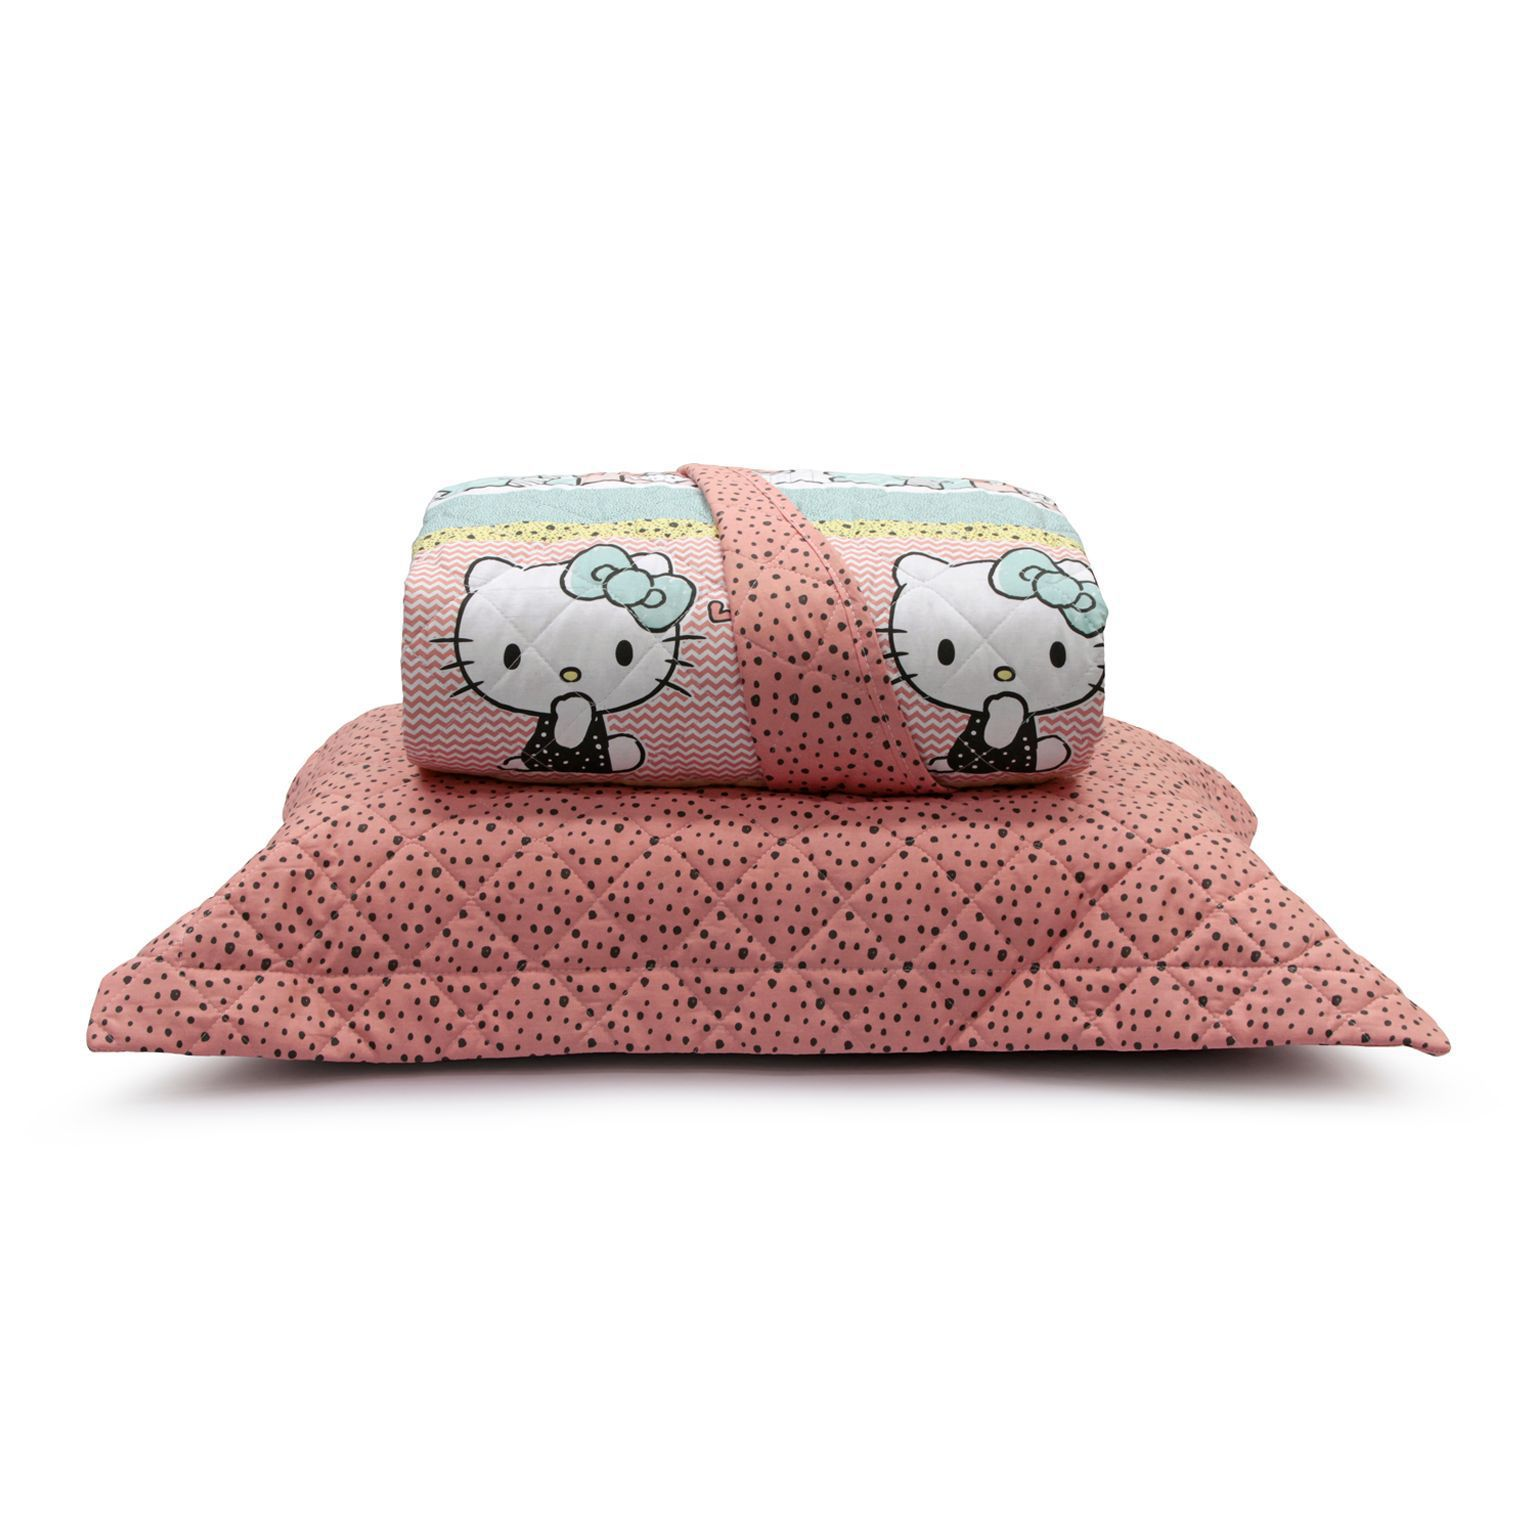 Kit Colcha Matelassê Dupla Face Hello Kitty